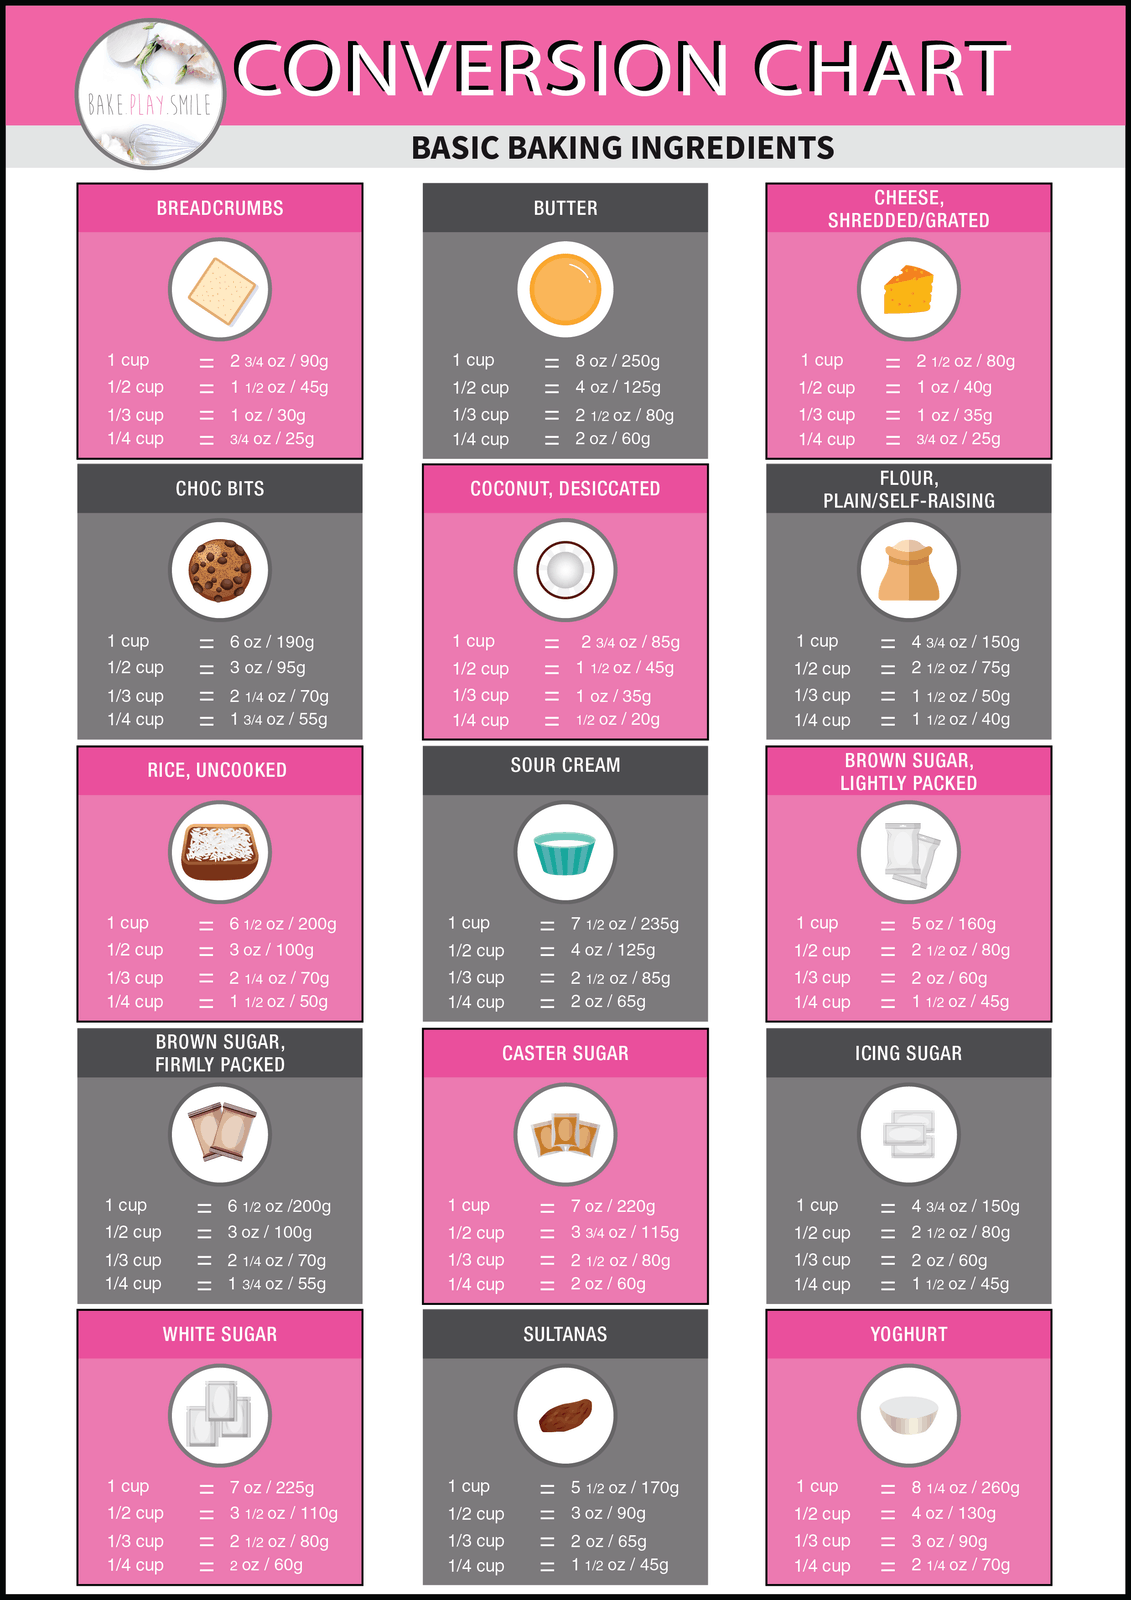 A baking conversion chart to convert ingredients between grams and cups